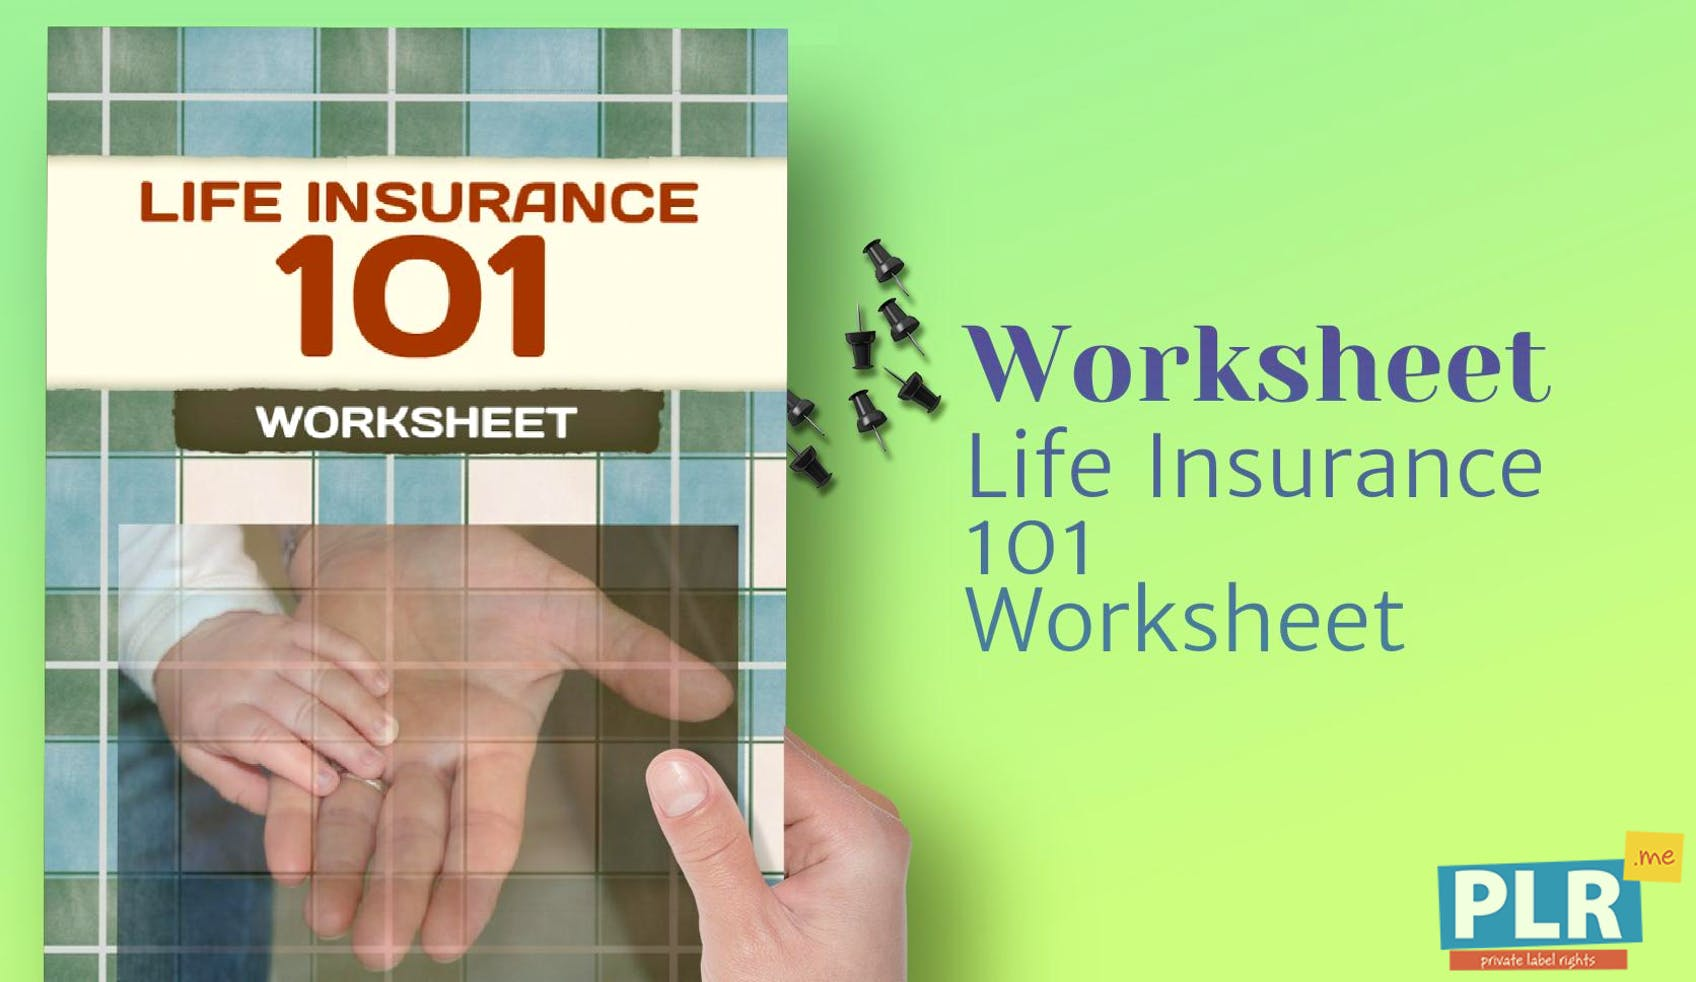 Life Insurance 101 Worksheet